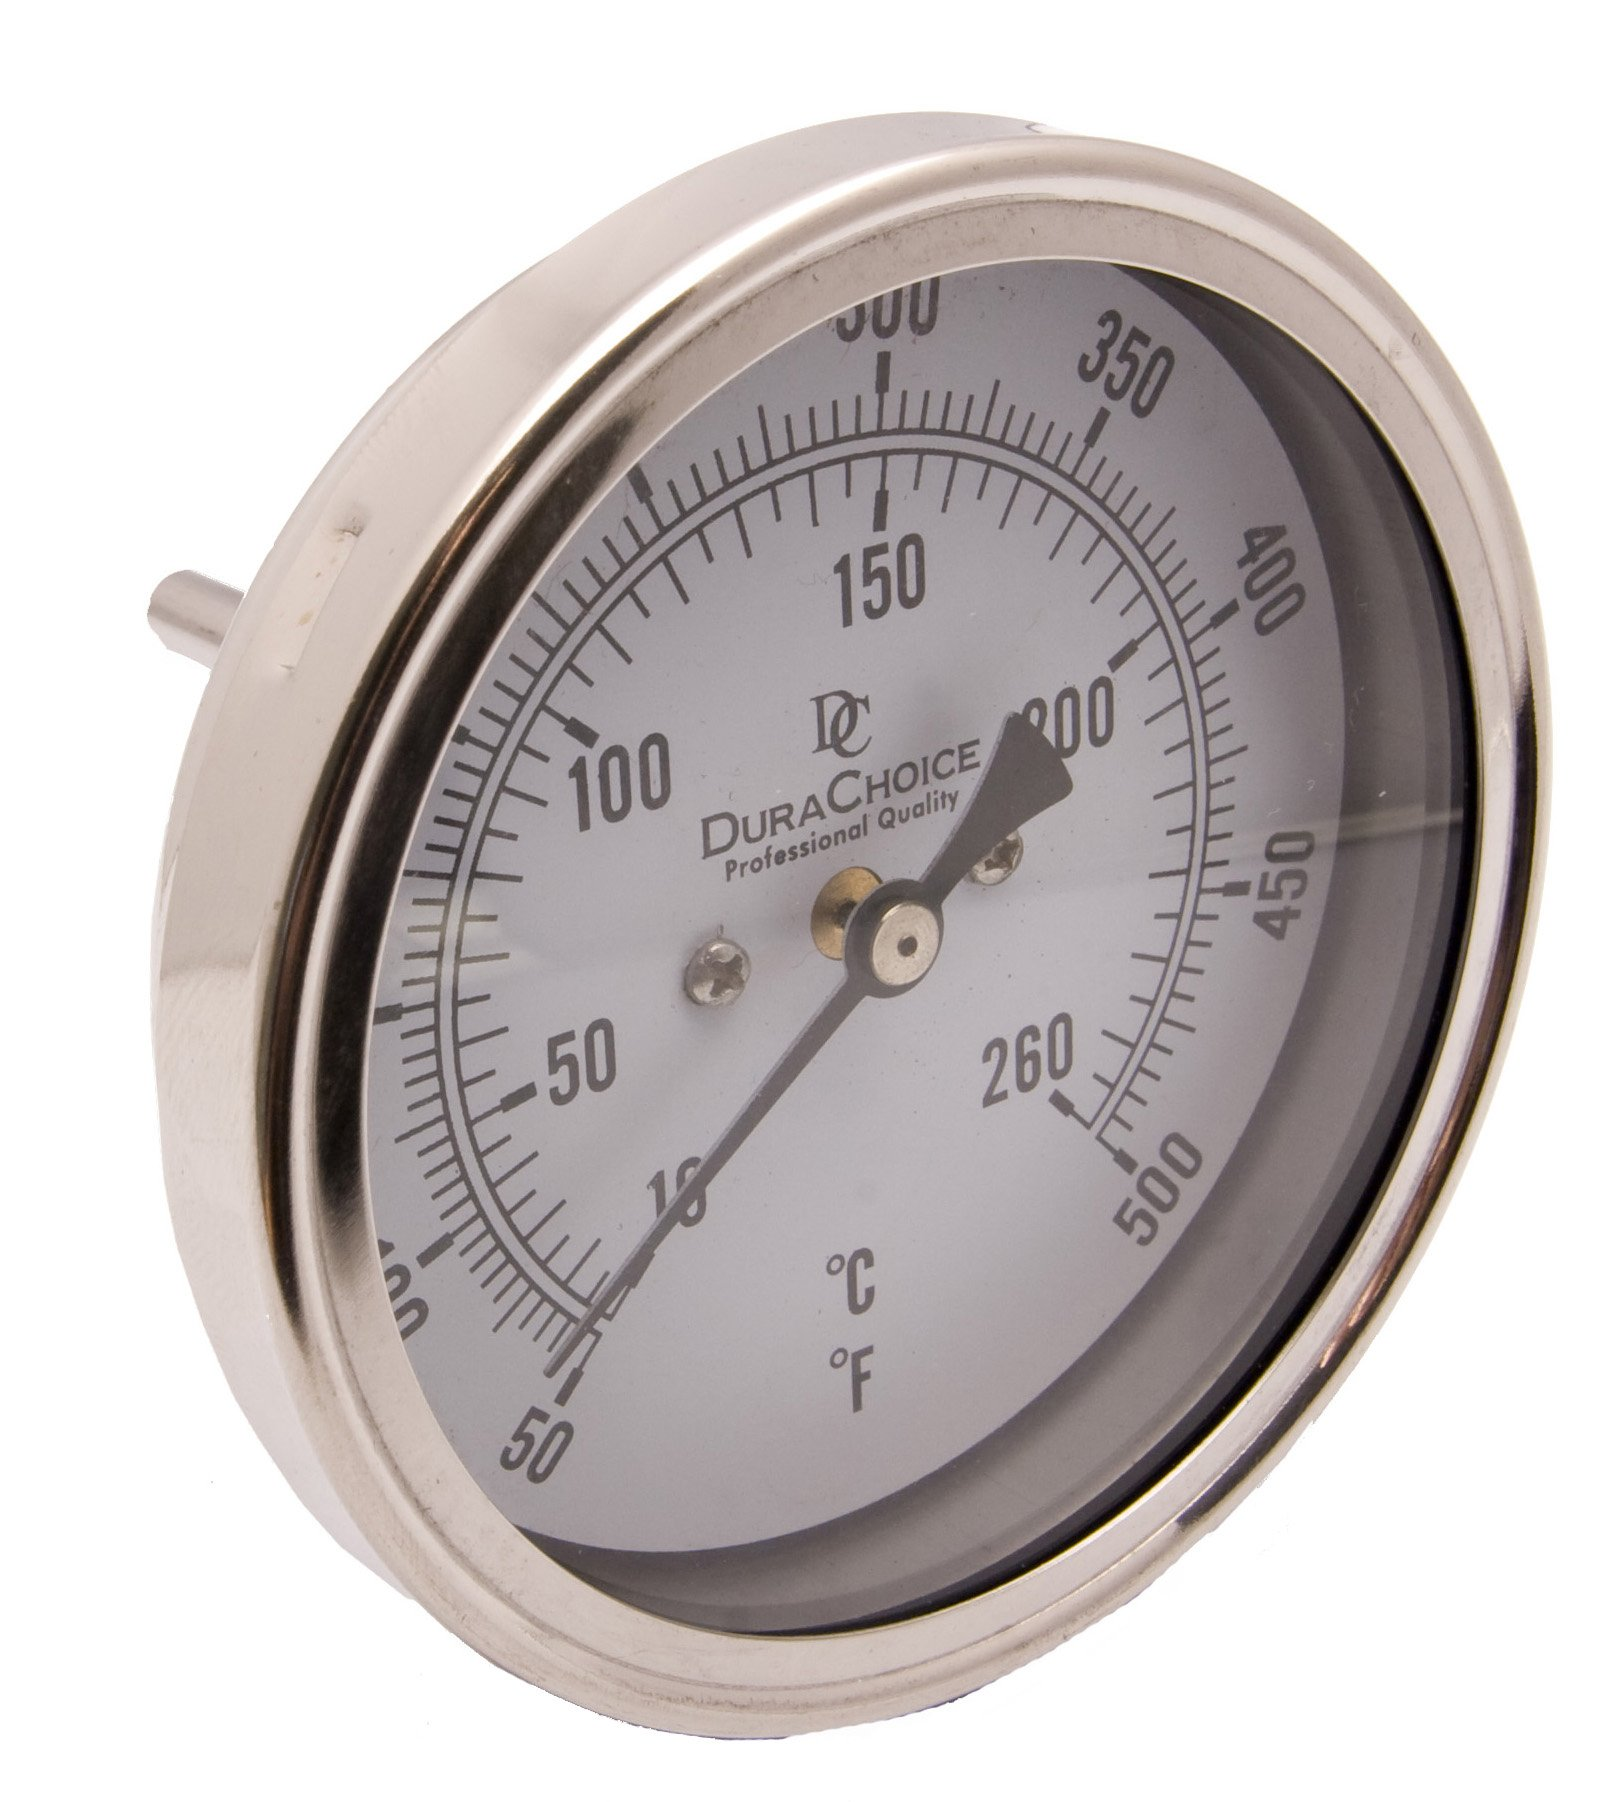 Industrial Bimetal Thermometer 5'' Face x 2-1/2'' Stem, 50-500 w/Calibration Dial